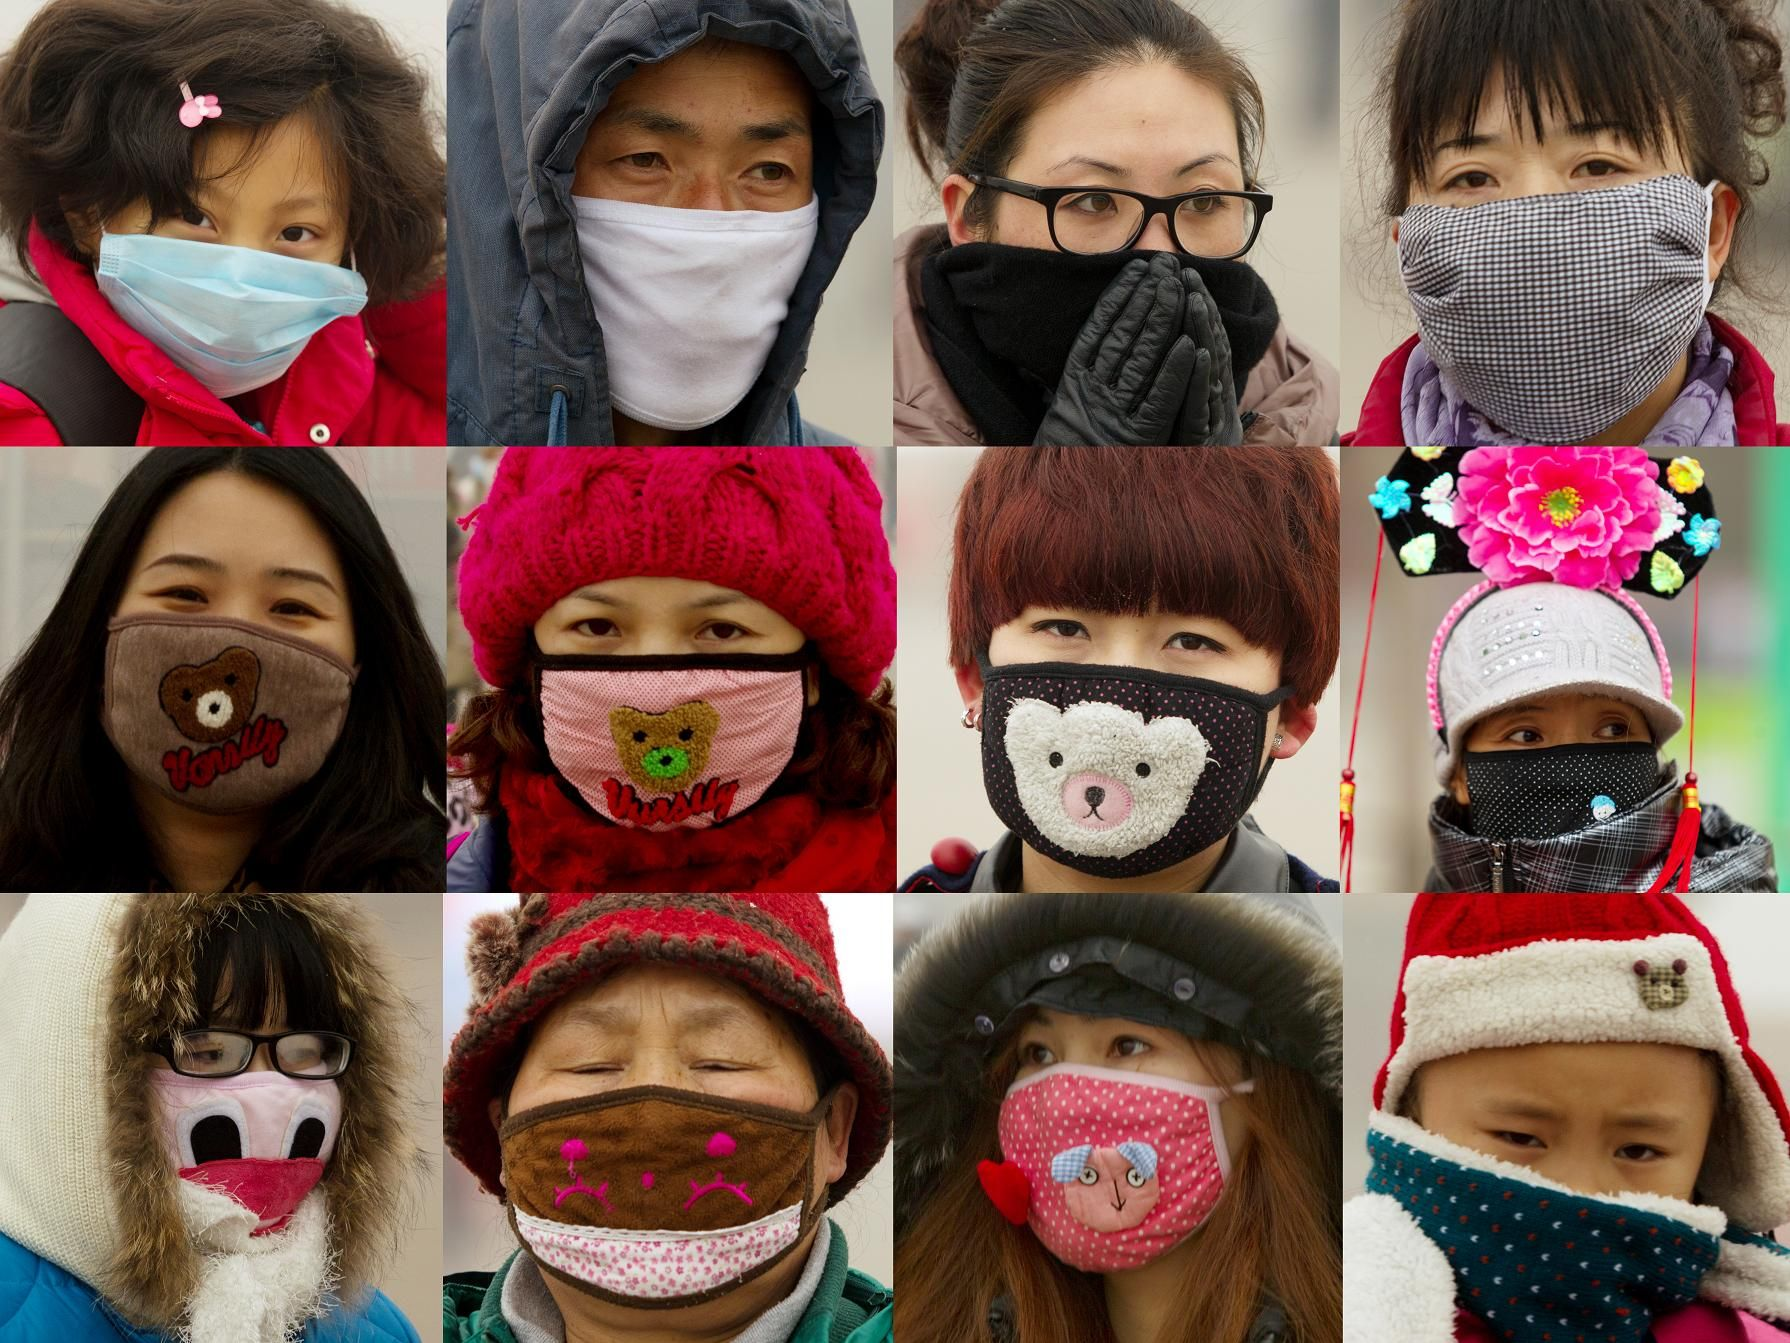 Take Masks With Designsfashion Face Medical Over The